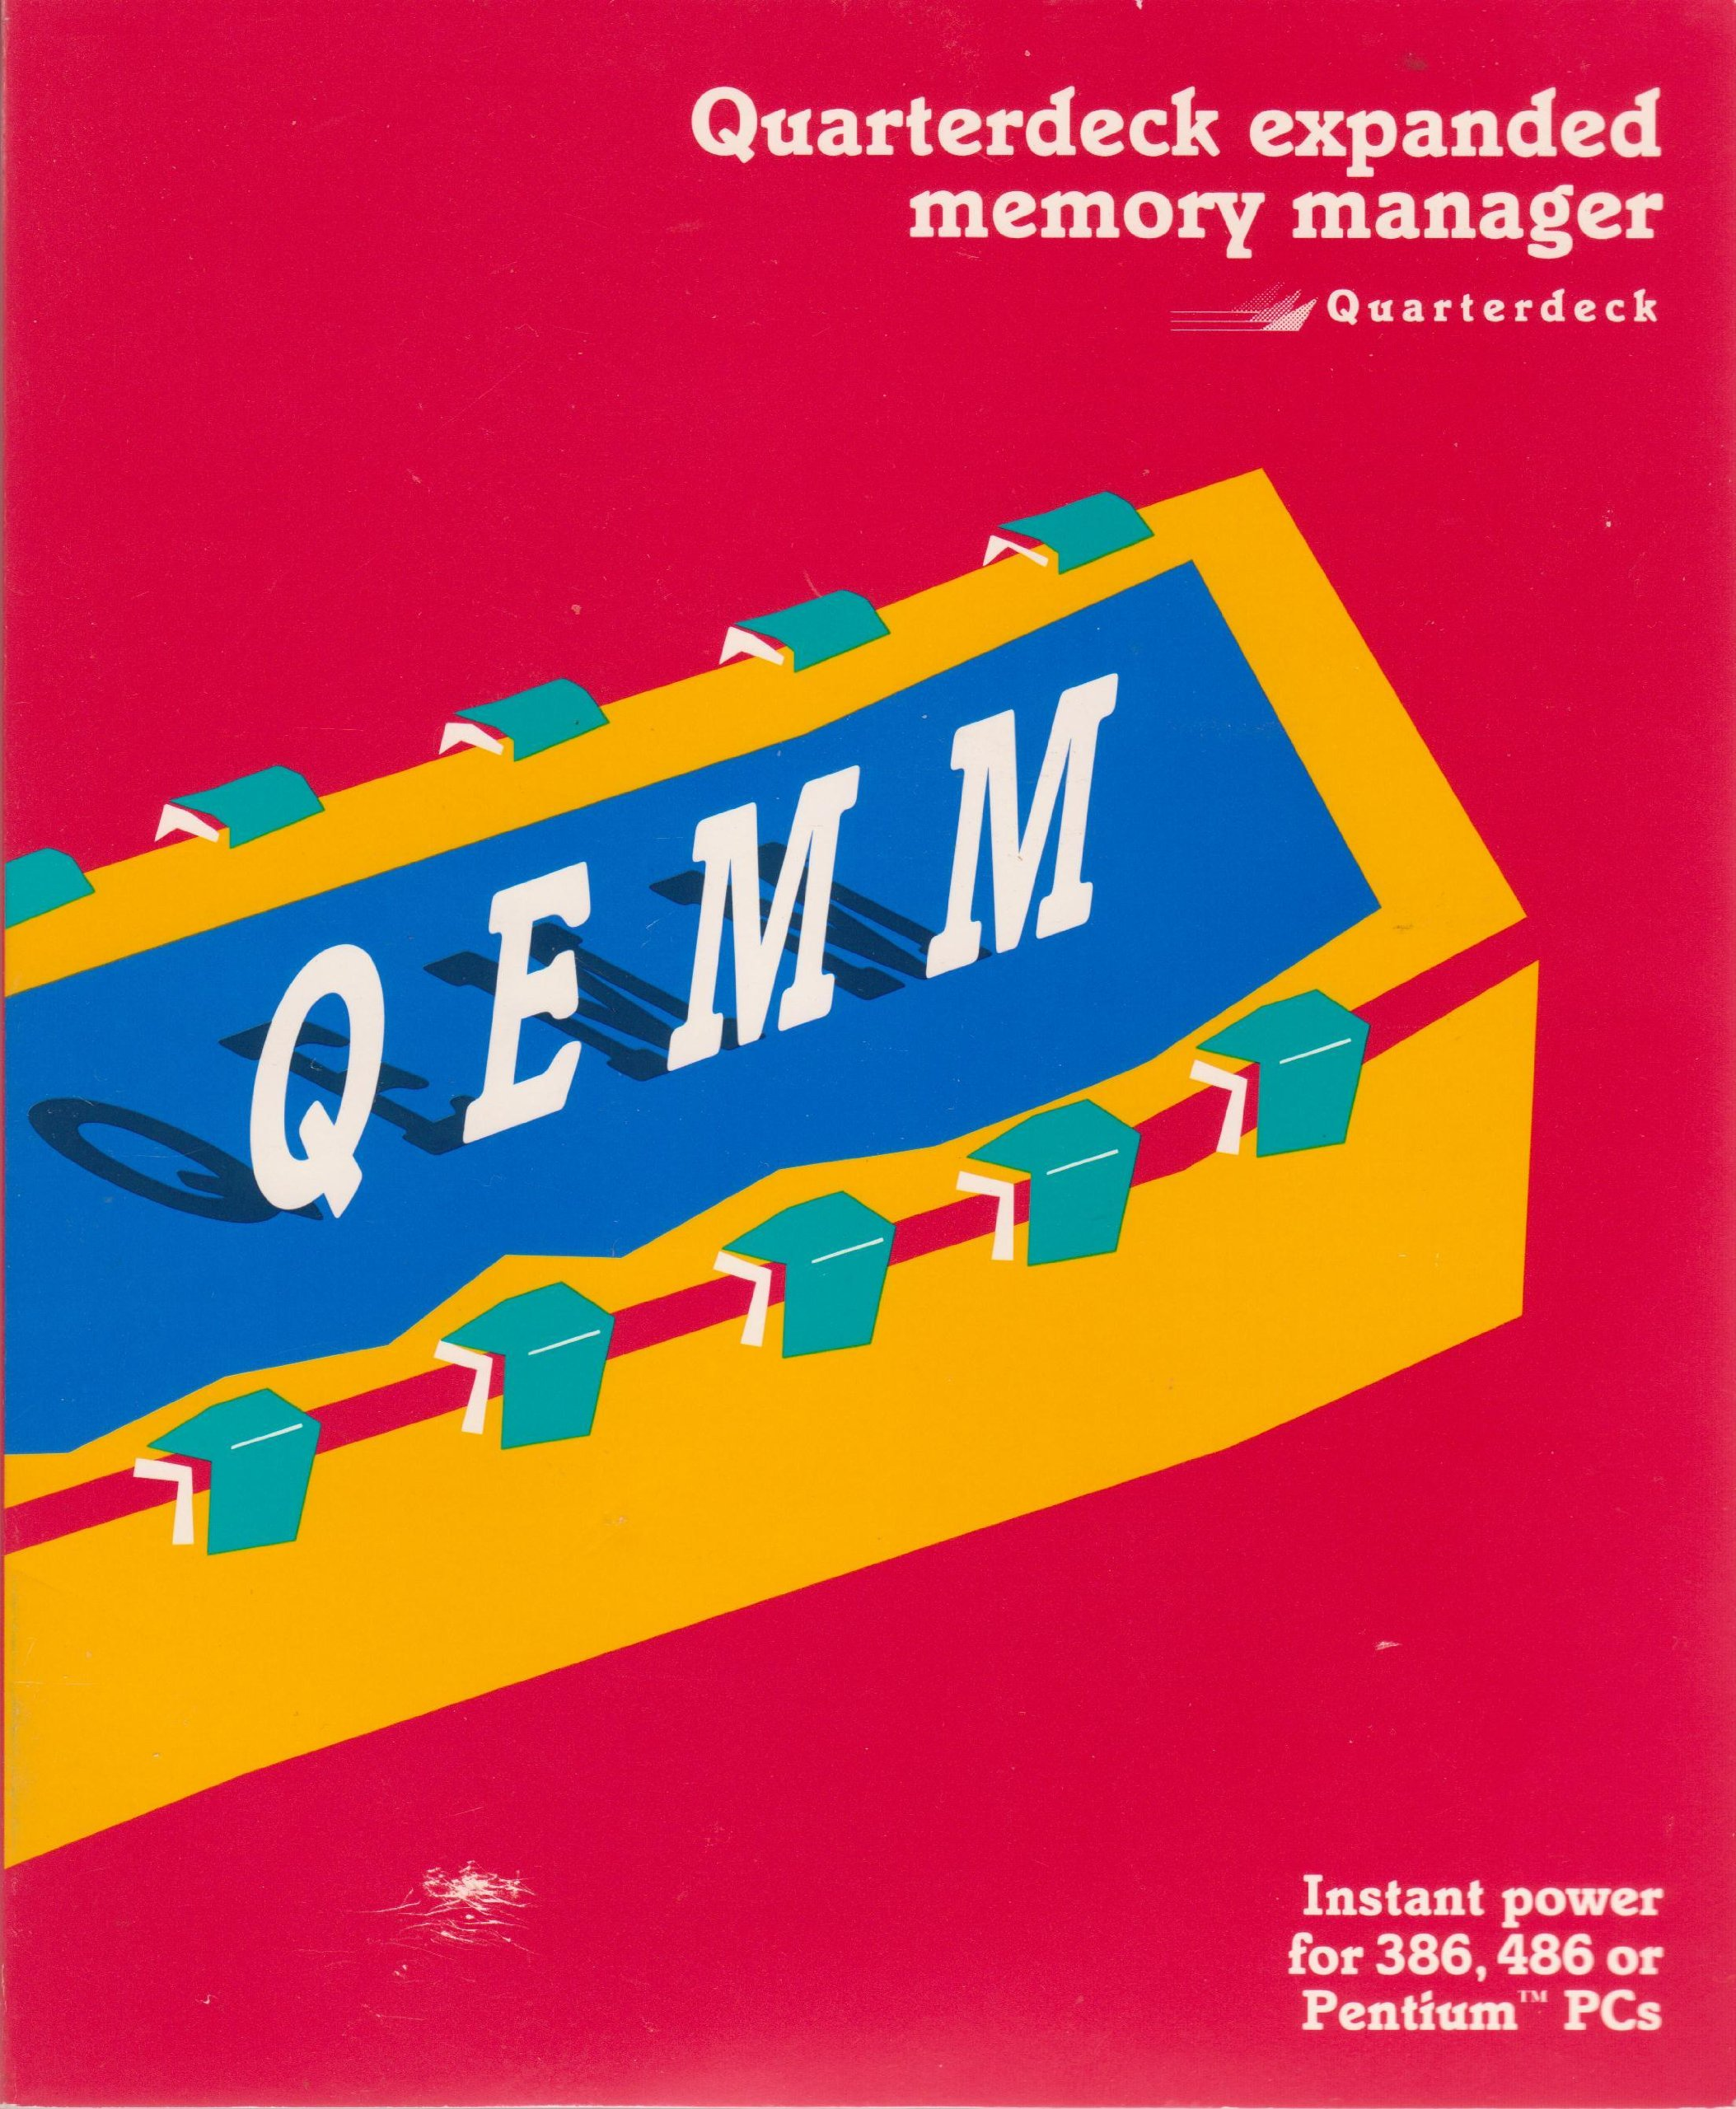 Quarterdeck expanded memory manager: QEMM, instant power for 386